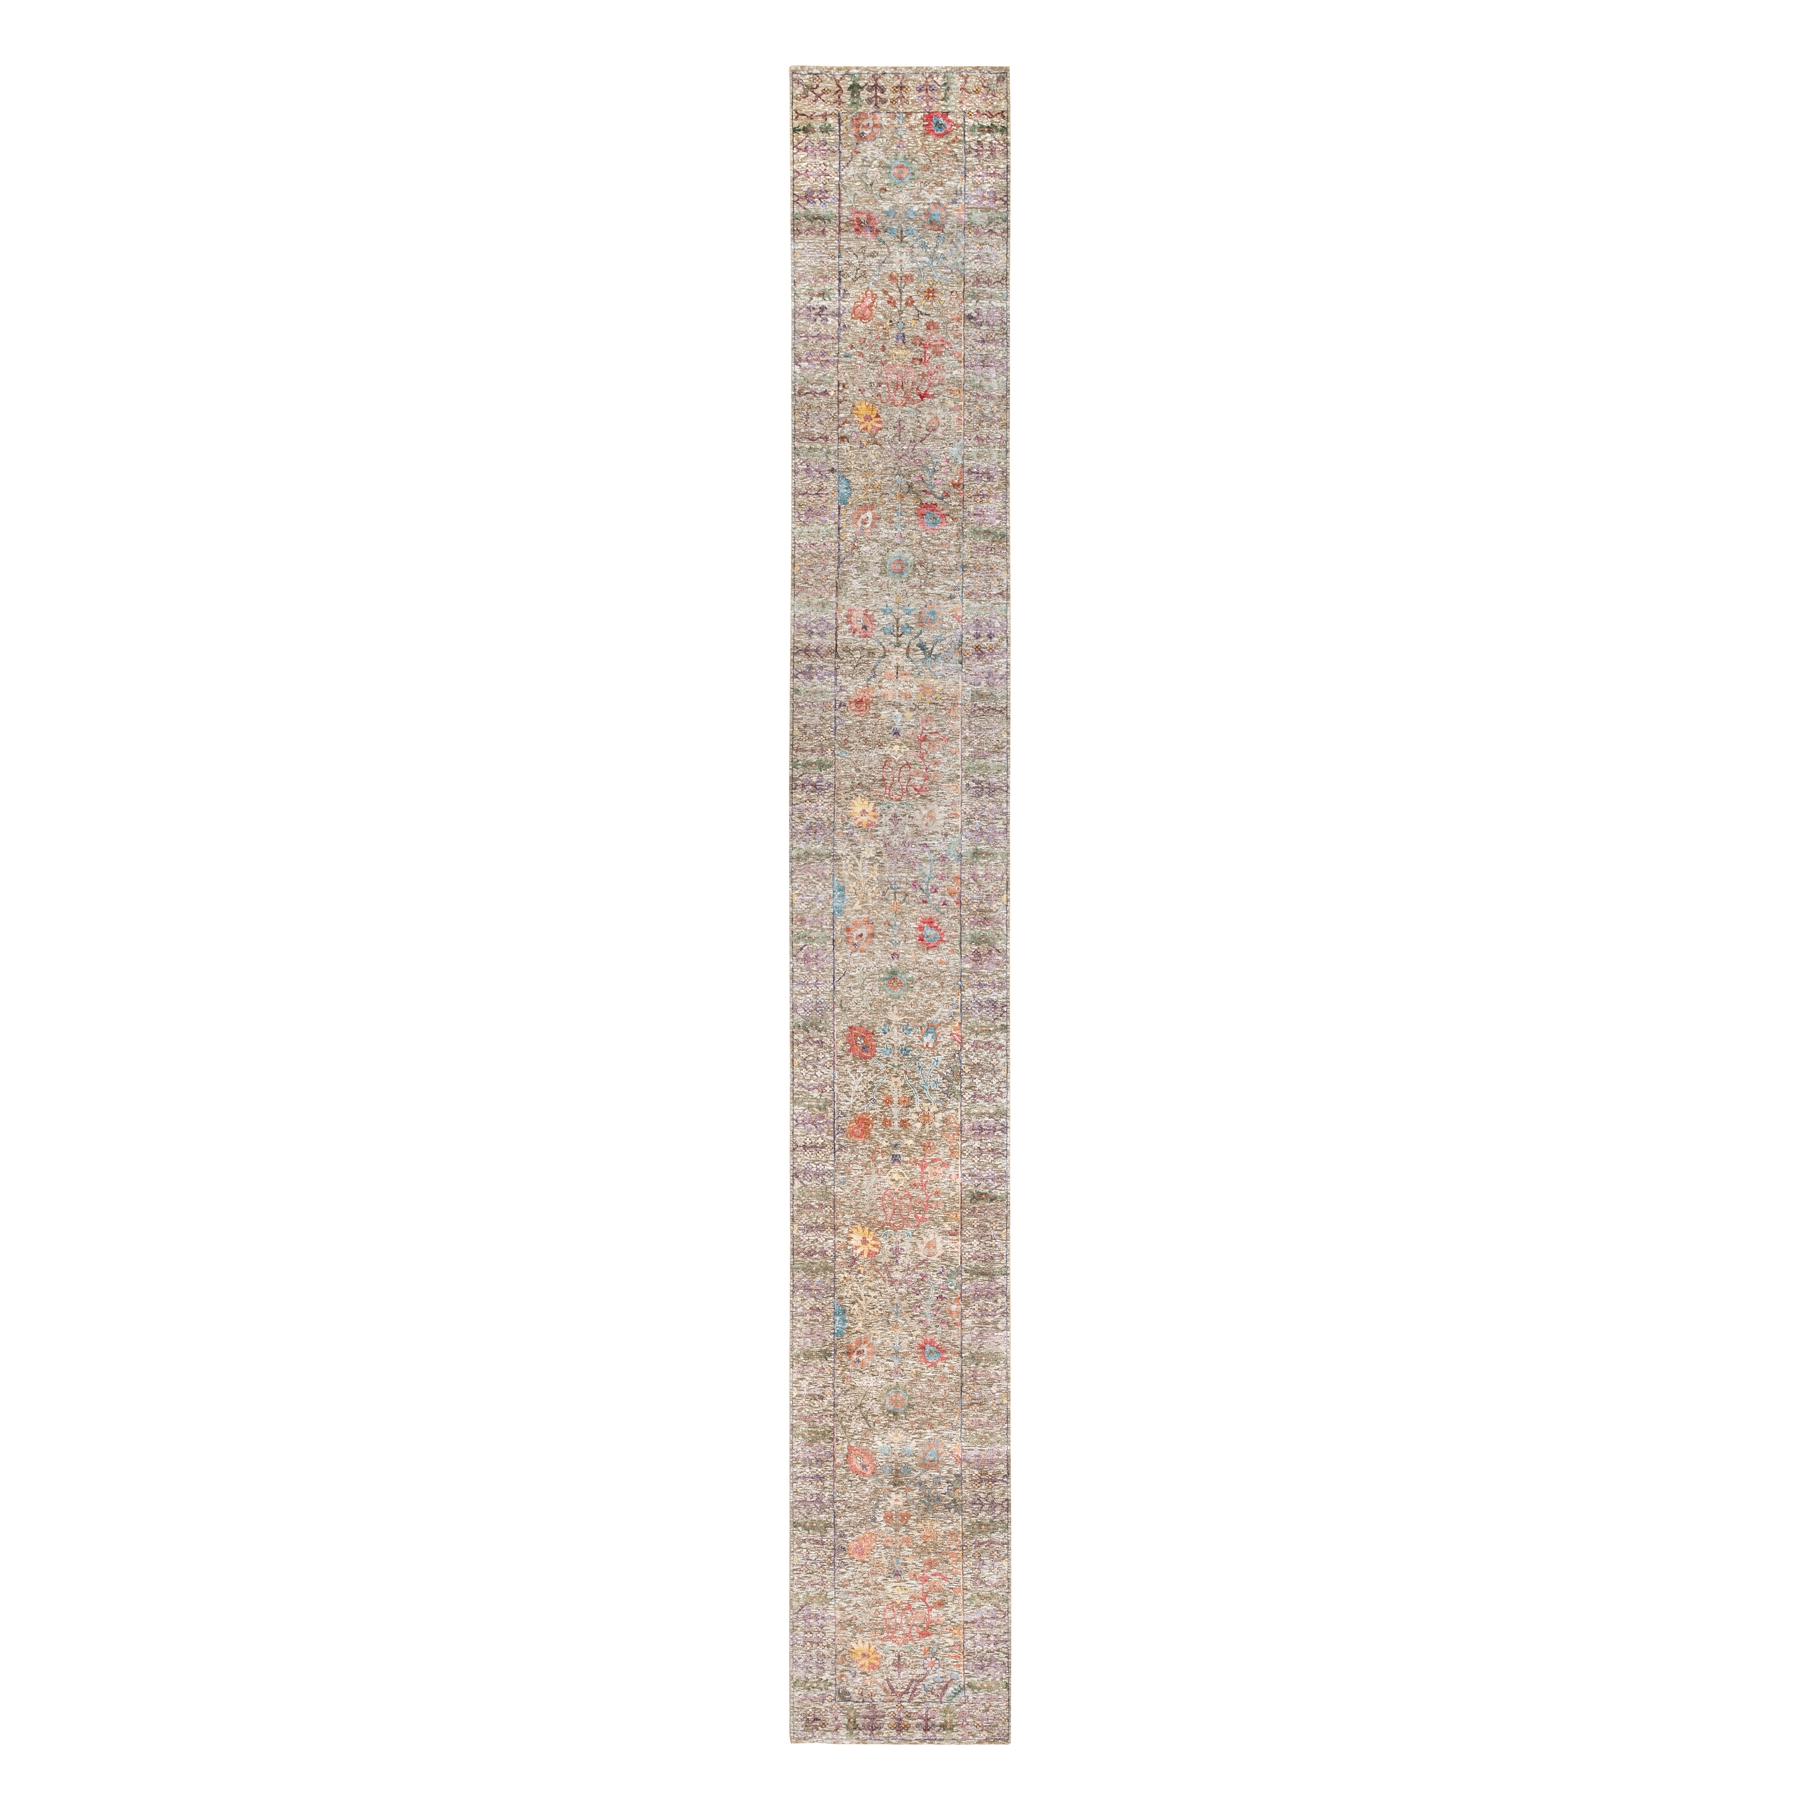 Wool and Real Silk Collection Hand Knotted Brown Rug No: 1117924